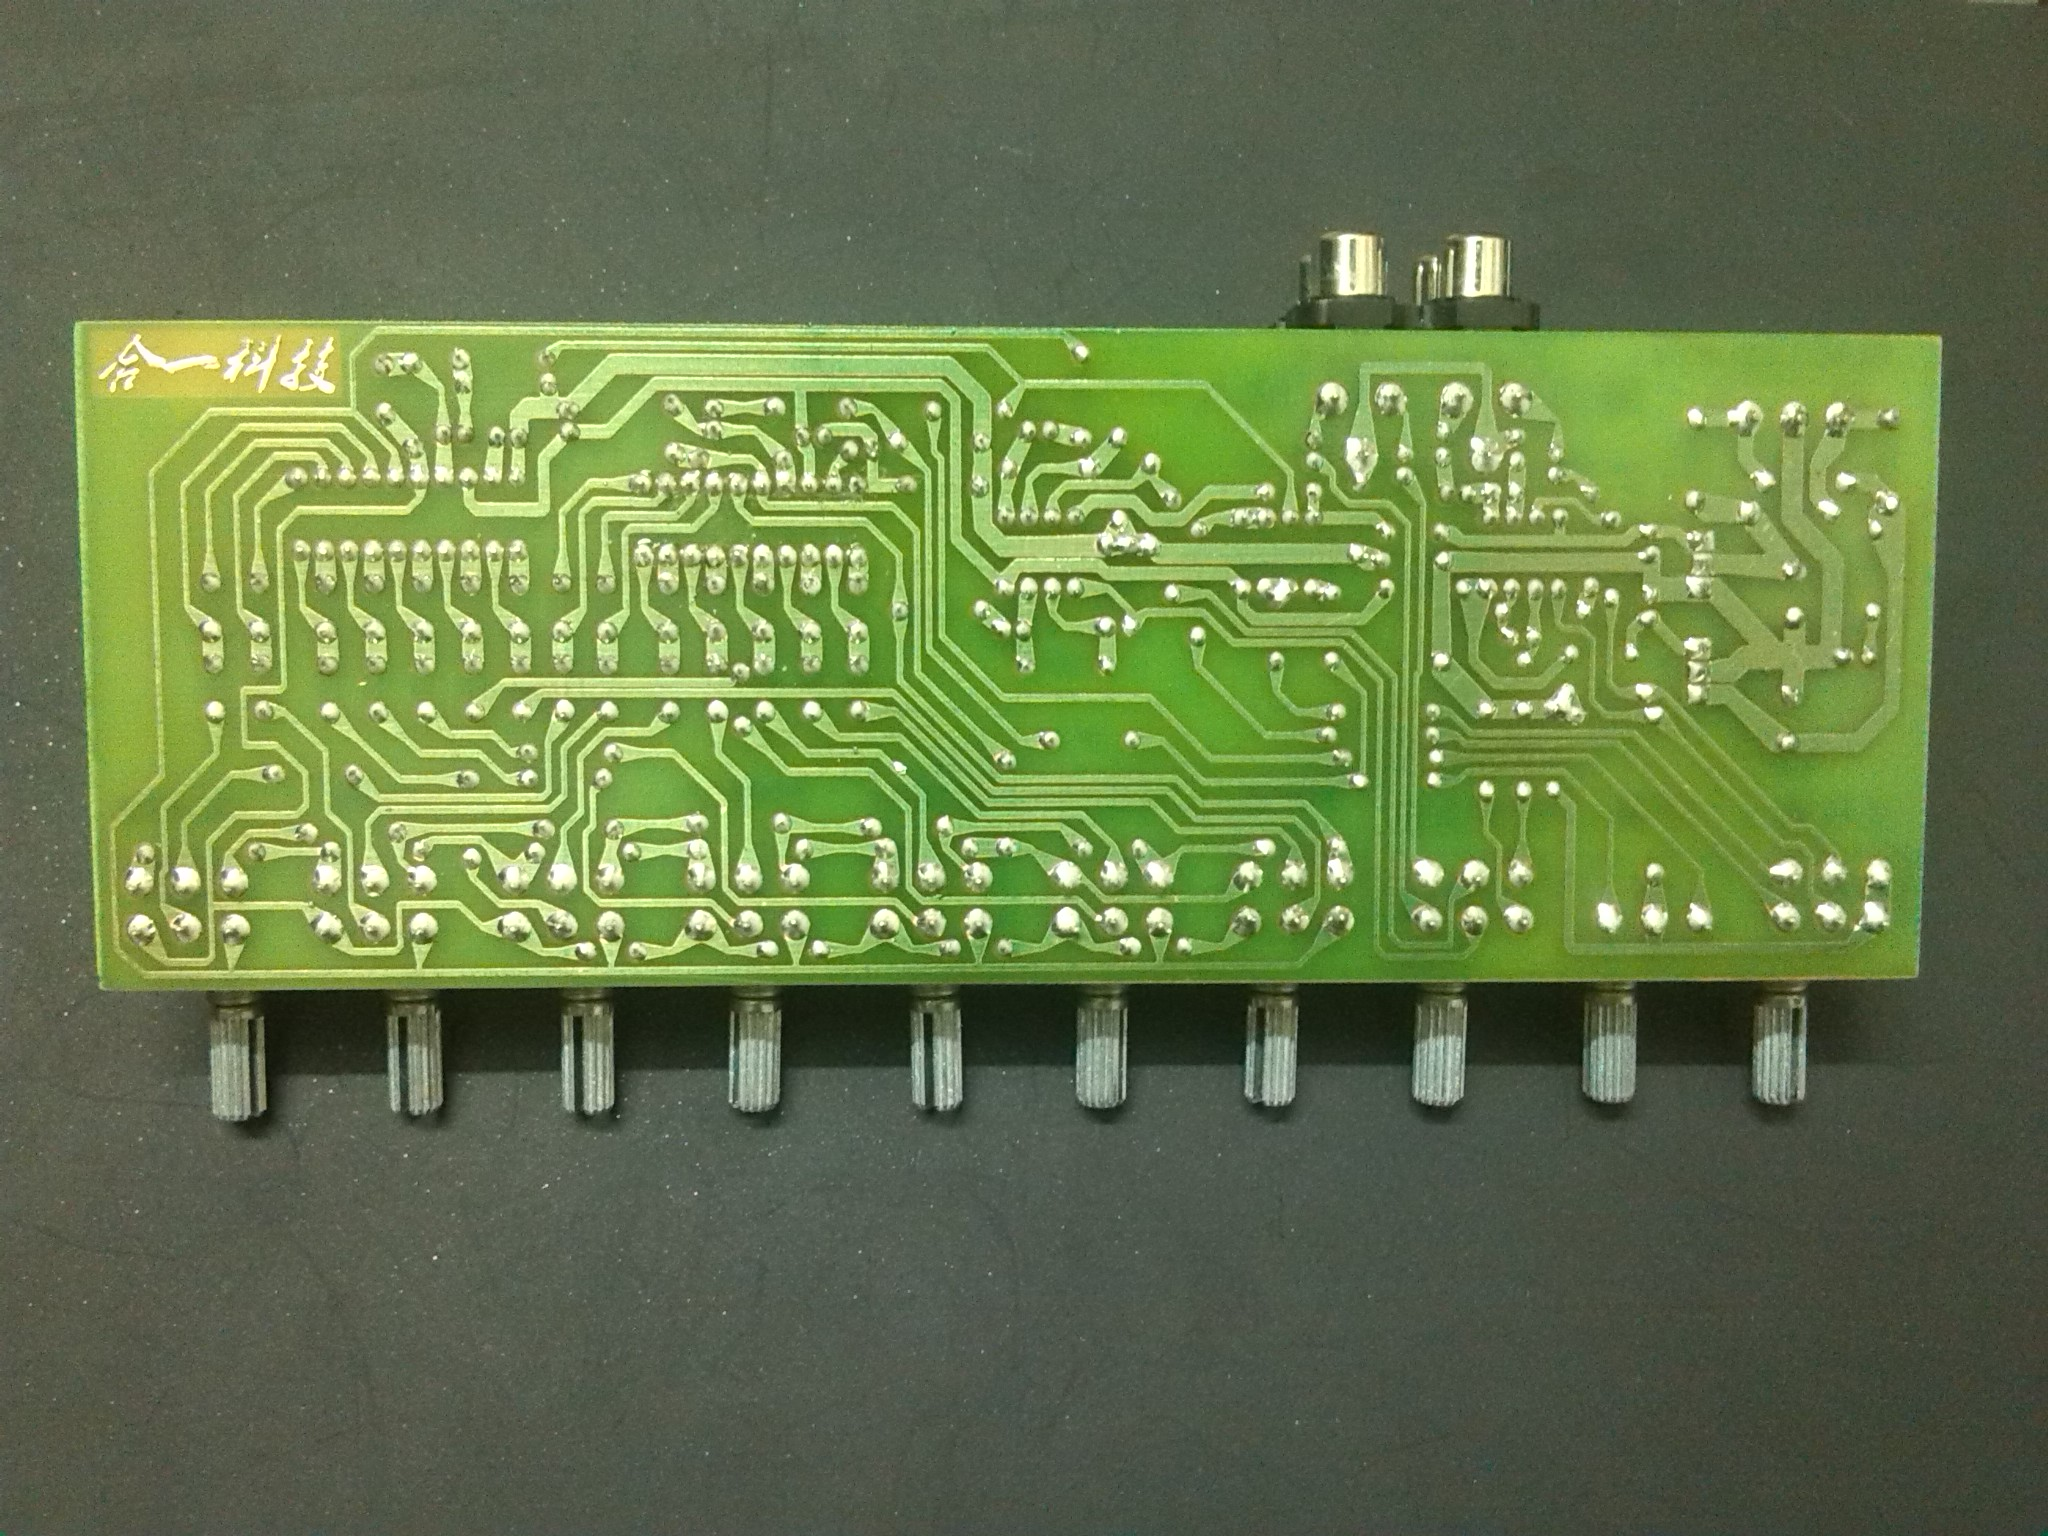 Usd 652 Fever Tuning Board Audio Front Panel Eq Equalizer Amplifier Circuit Lightbox Moreview